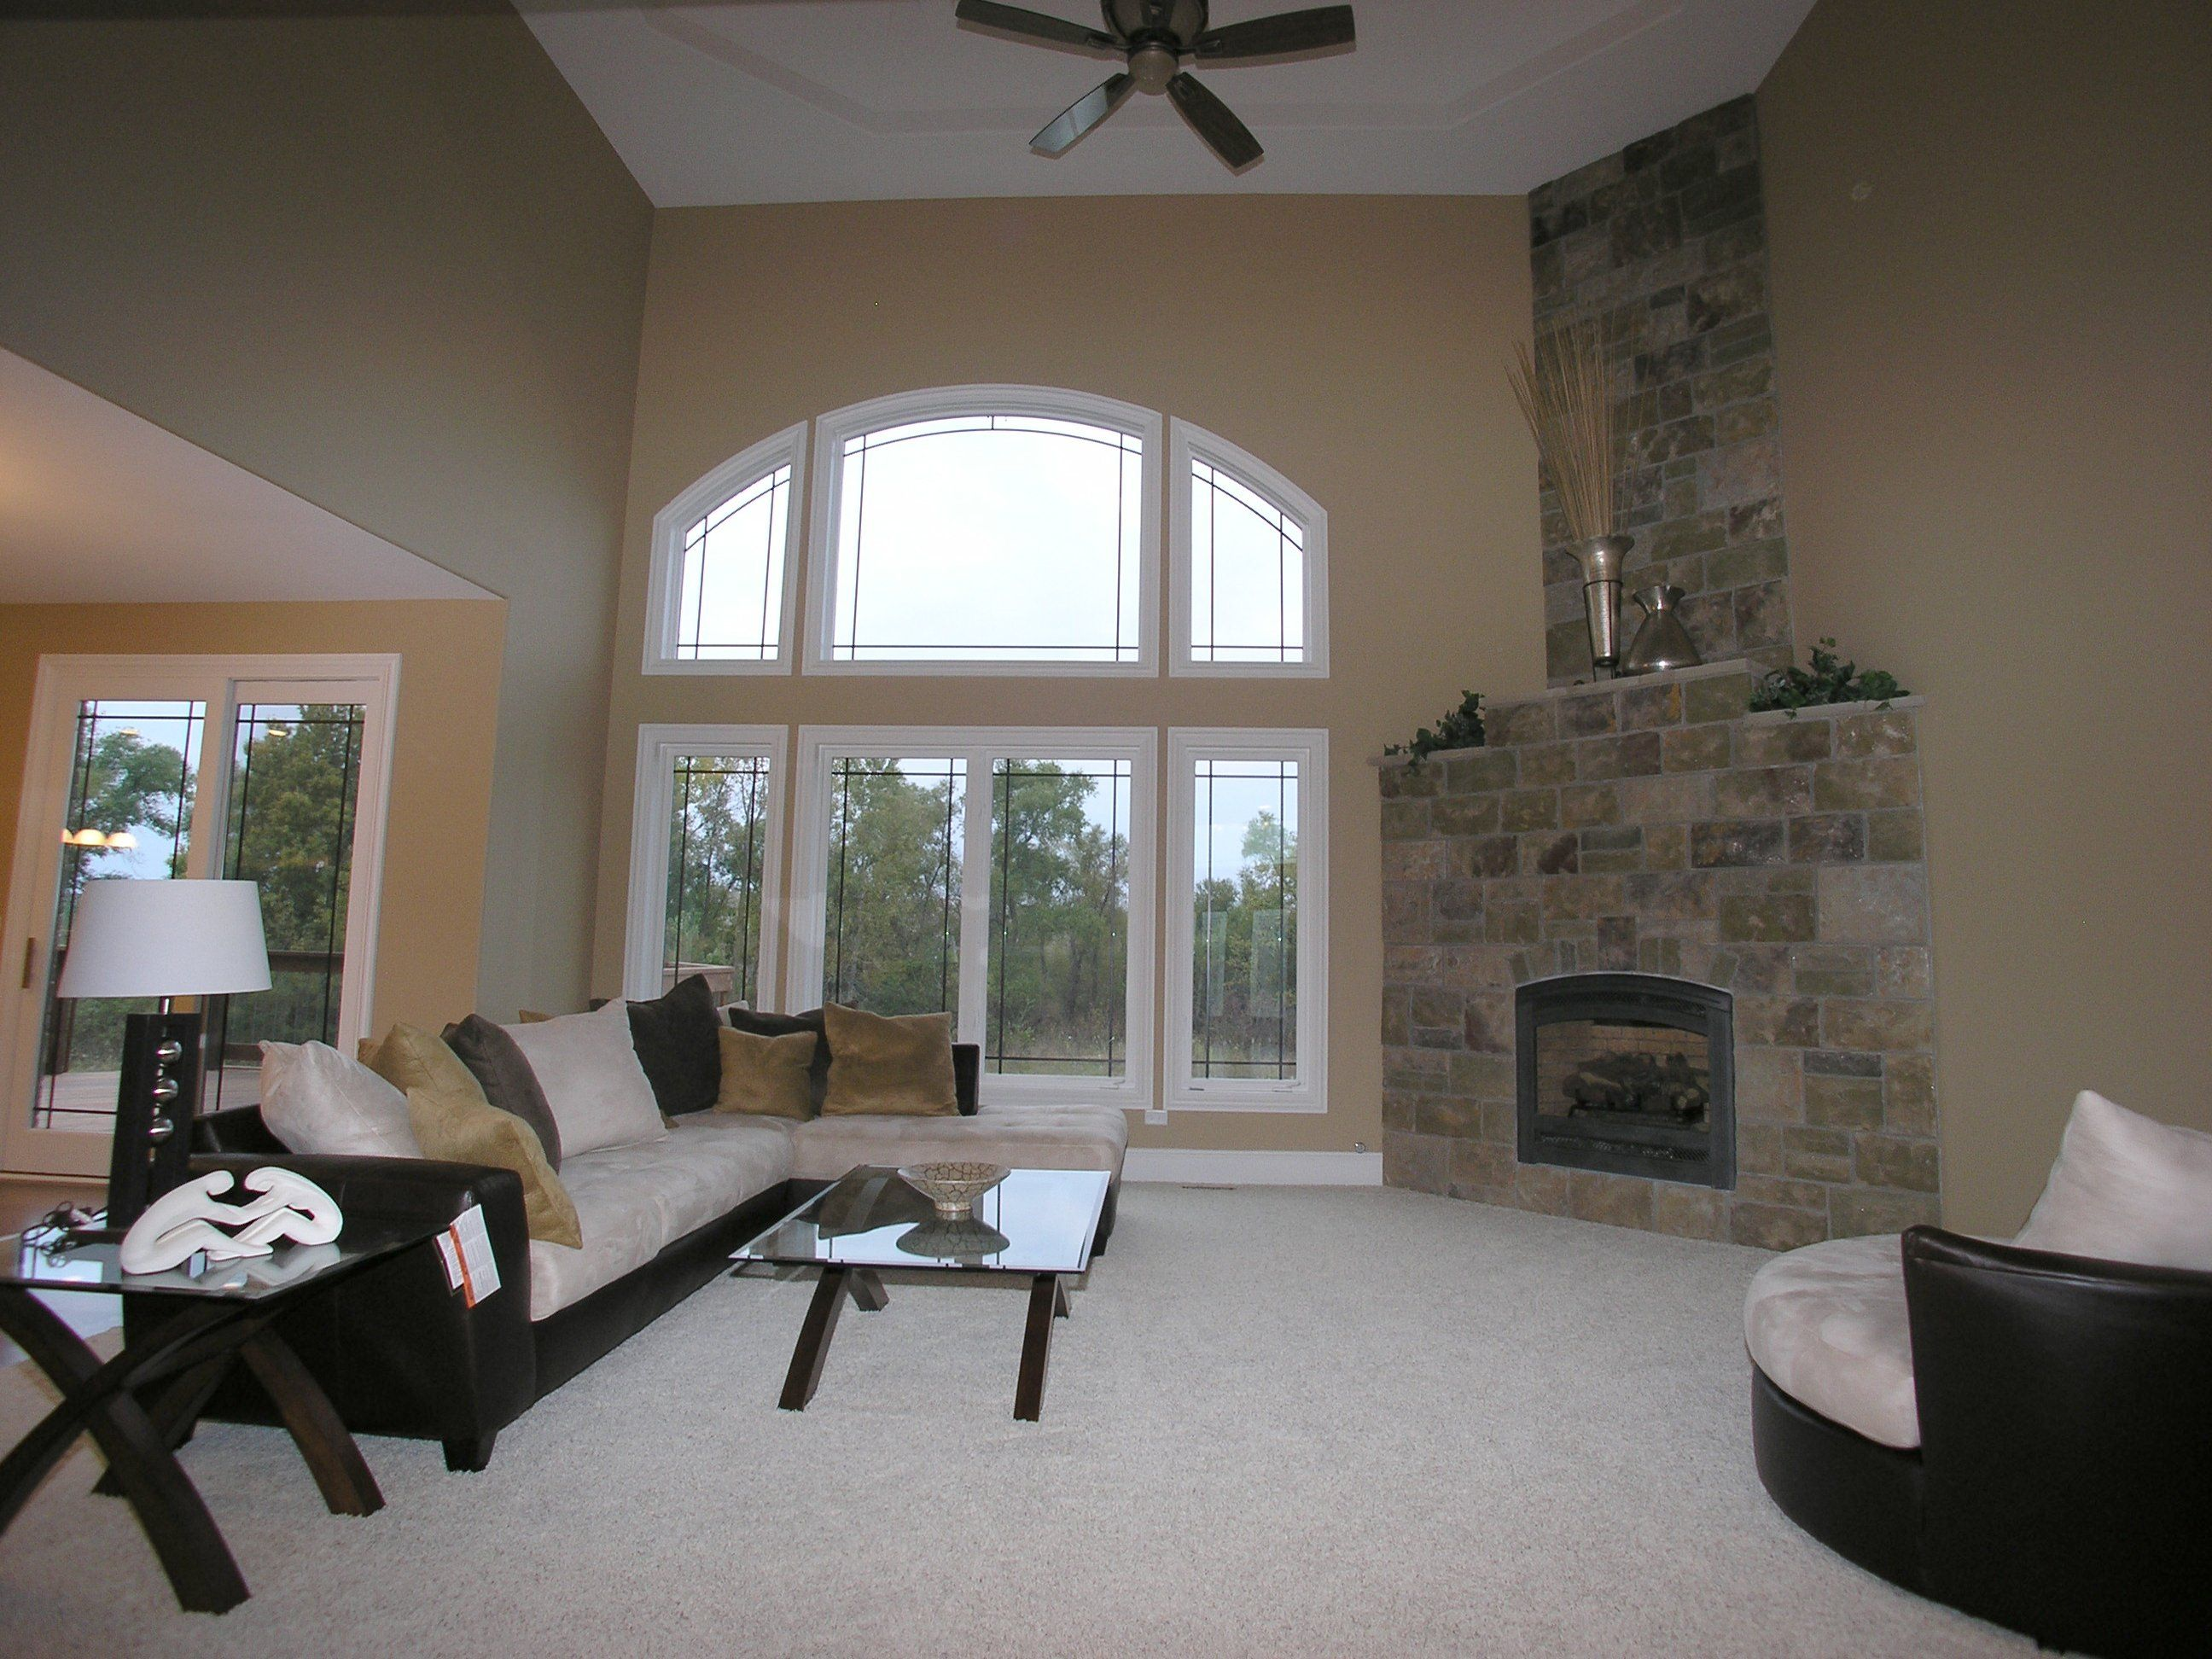 Living Room With High Ceilings Large Windows And Corner Fireplace Corner Stone Fireplace Corner Fireplace Fireplace